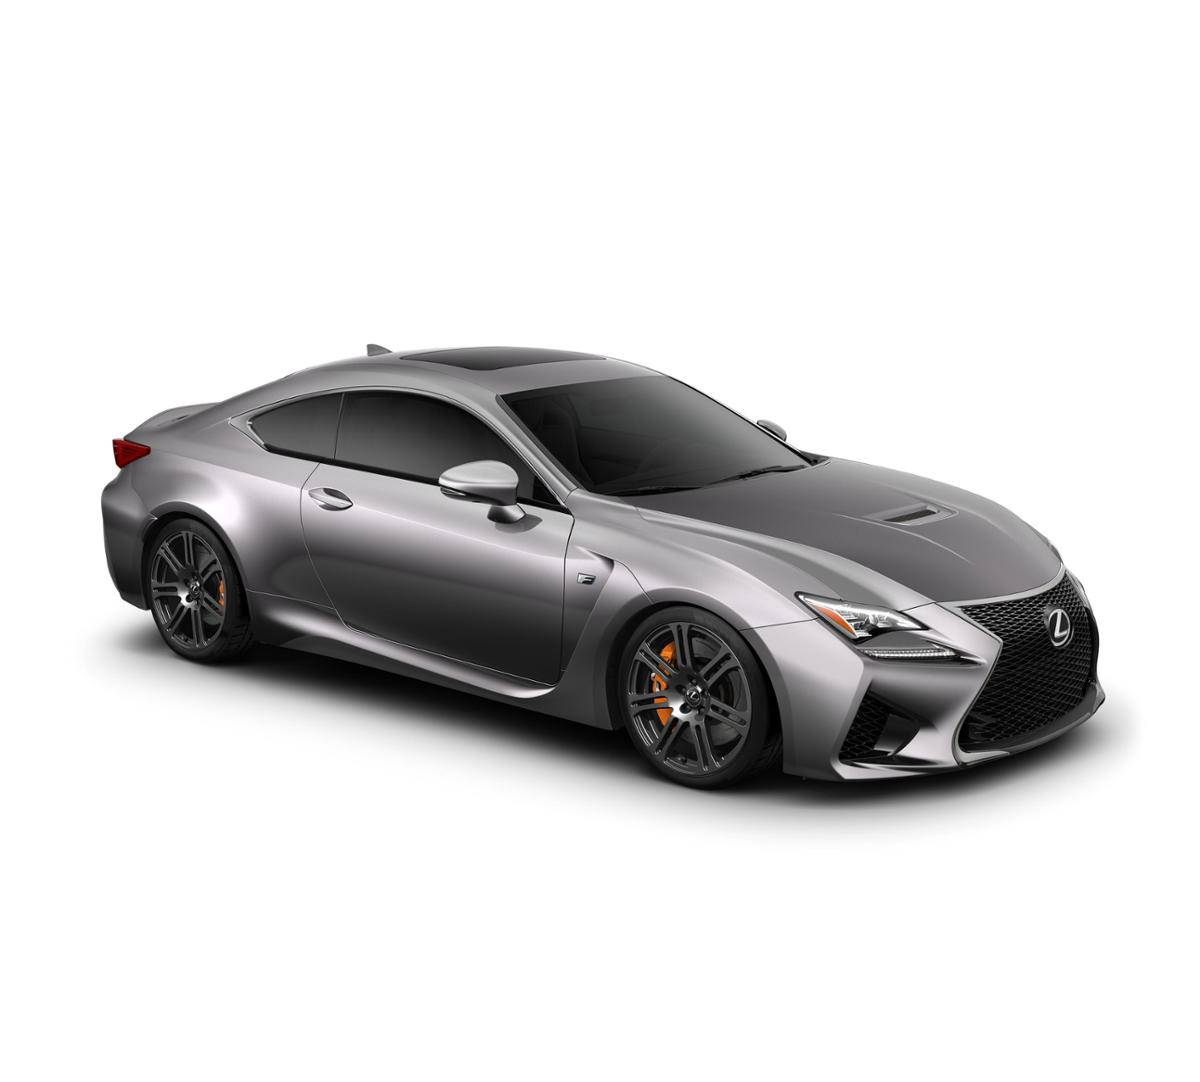 2017 Lexus Rc Exterior: 2017 Lexus RC F For Sale In Santa Fe